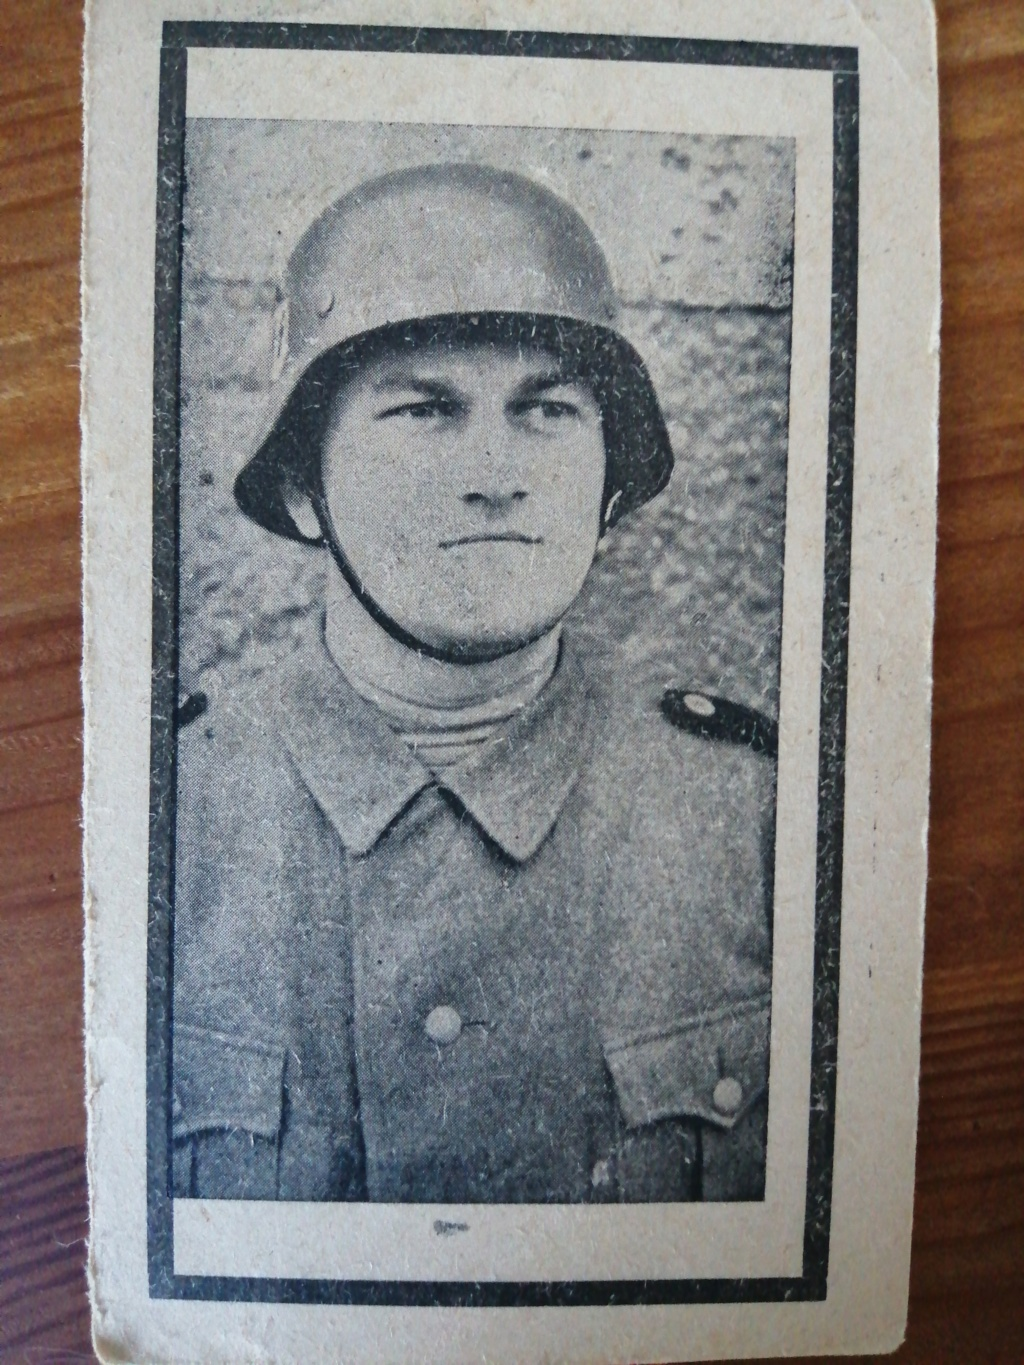 postez vos articles Waffen-SS - Page 5 15744312